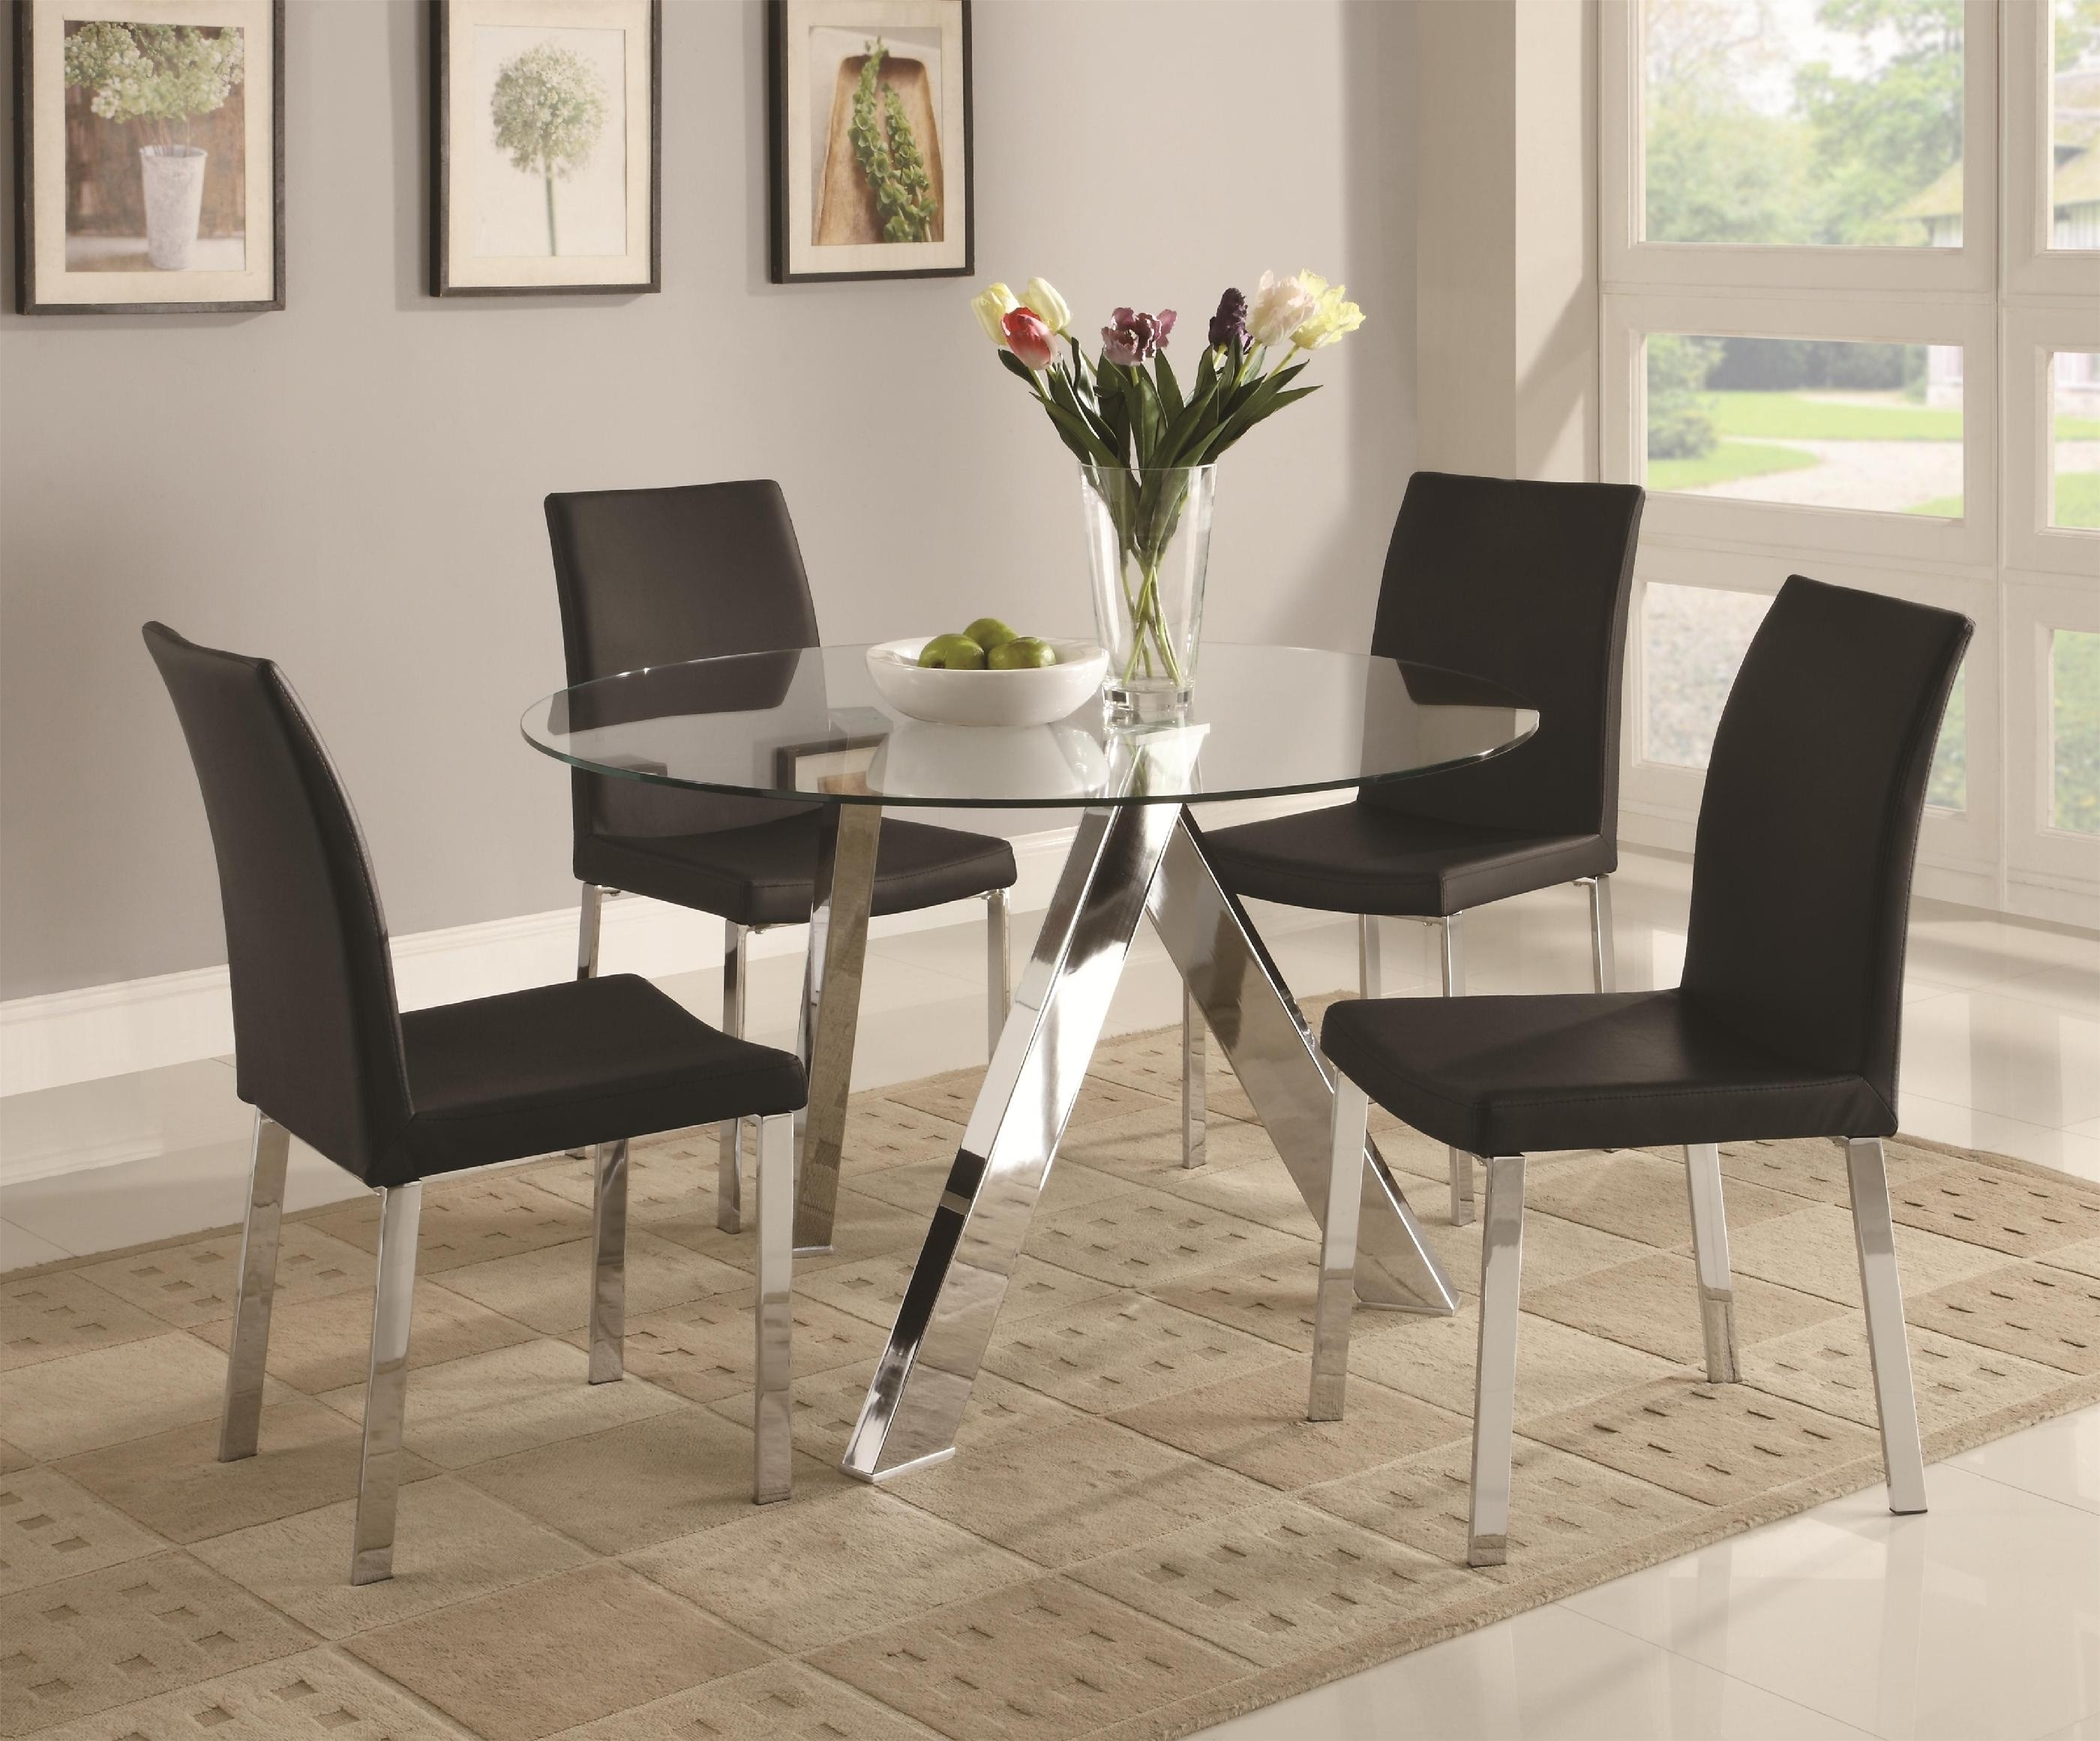 Fashionable Perth Glass Dining Tables Inside Dining Room. Round Glass Top Dining Table (View 22 of 25)